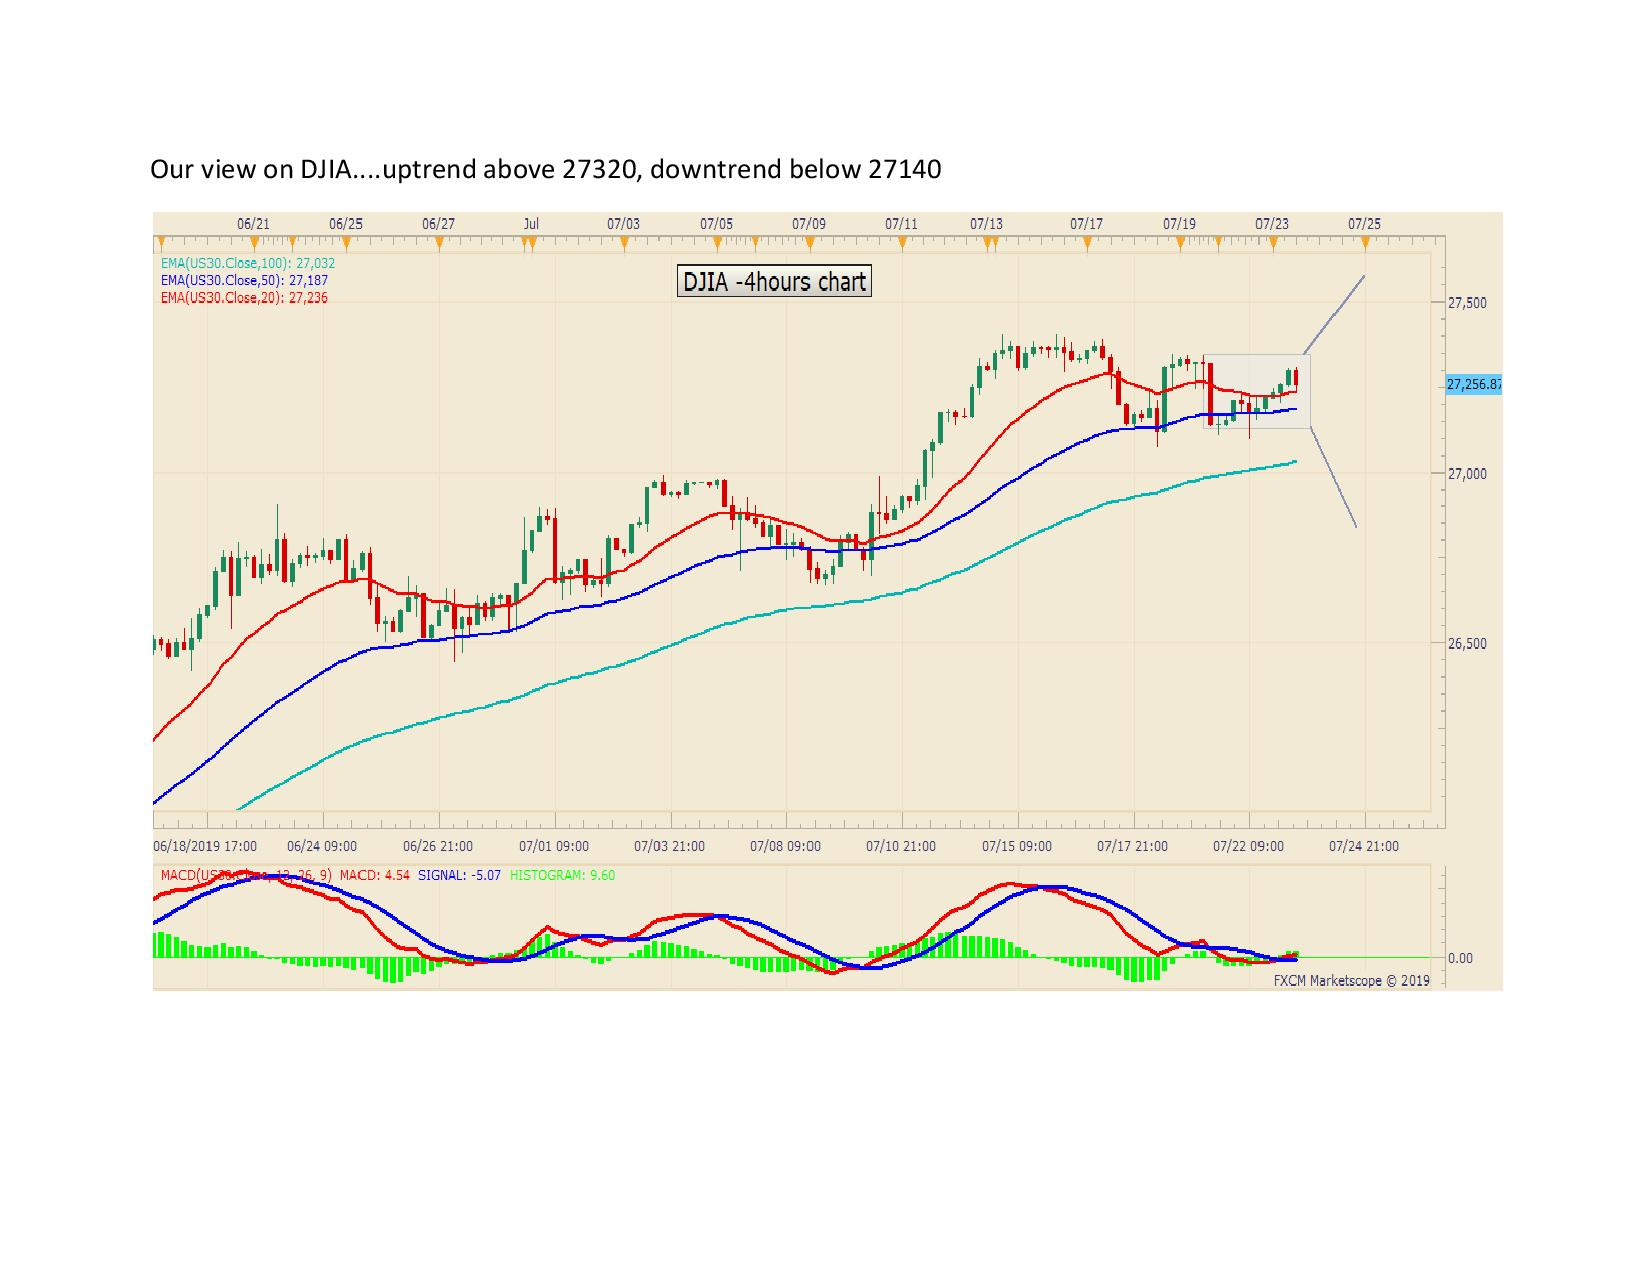 Our view on DJIA page 001